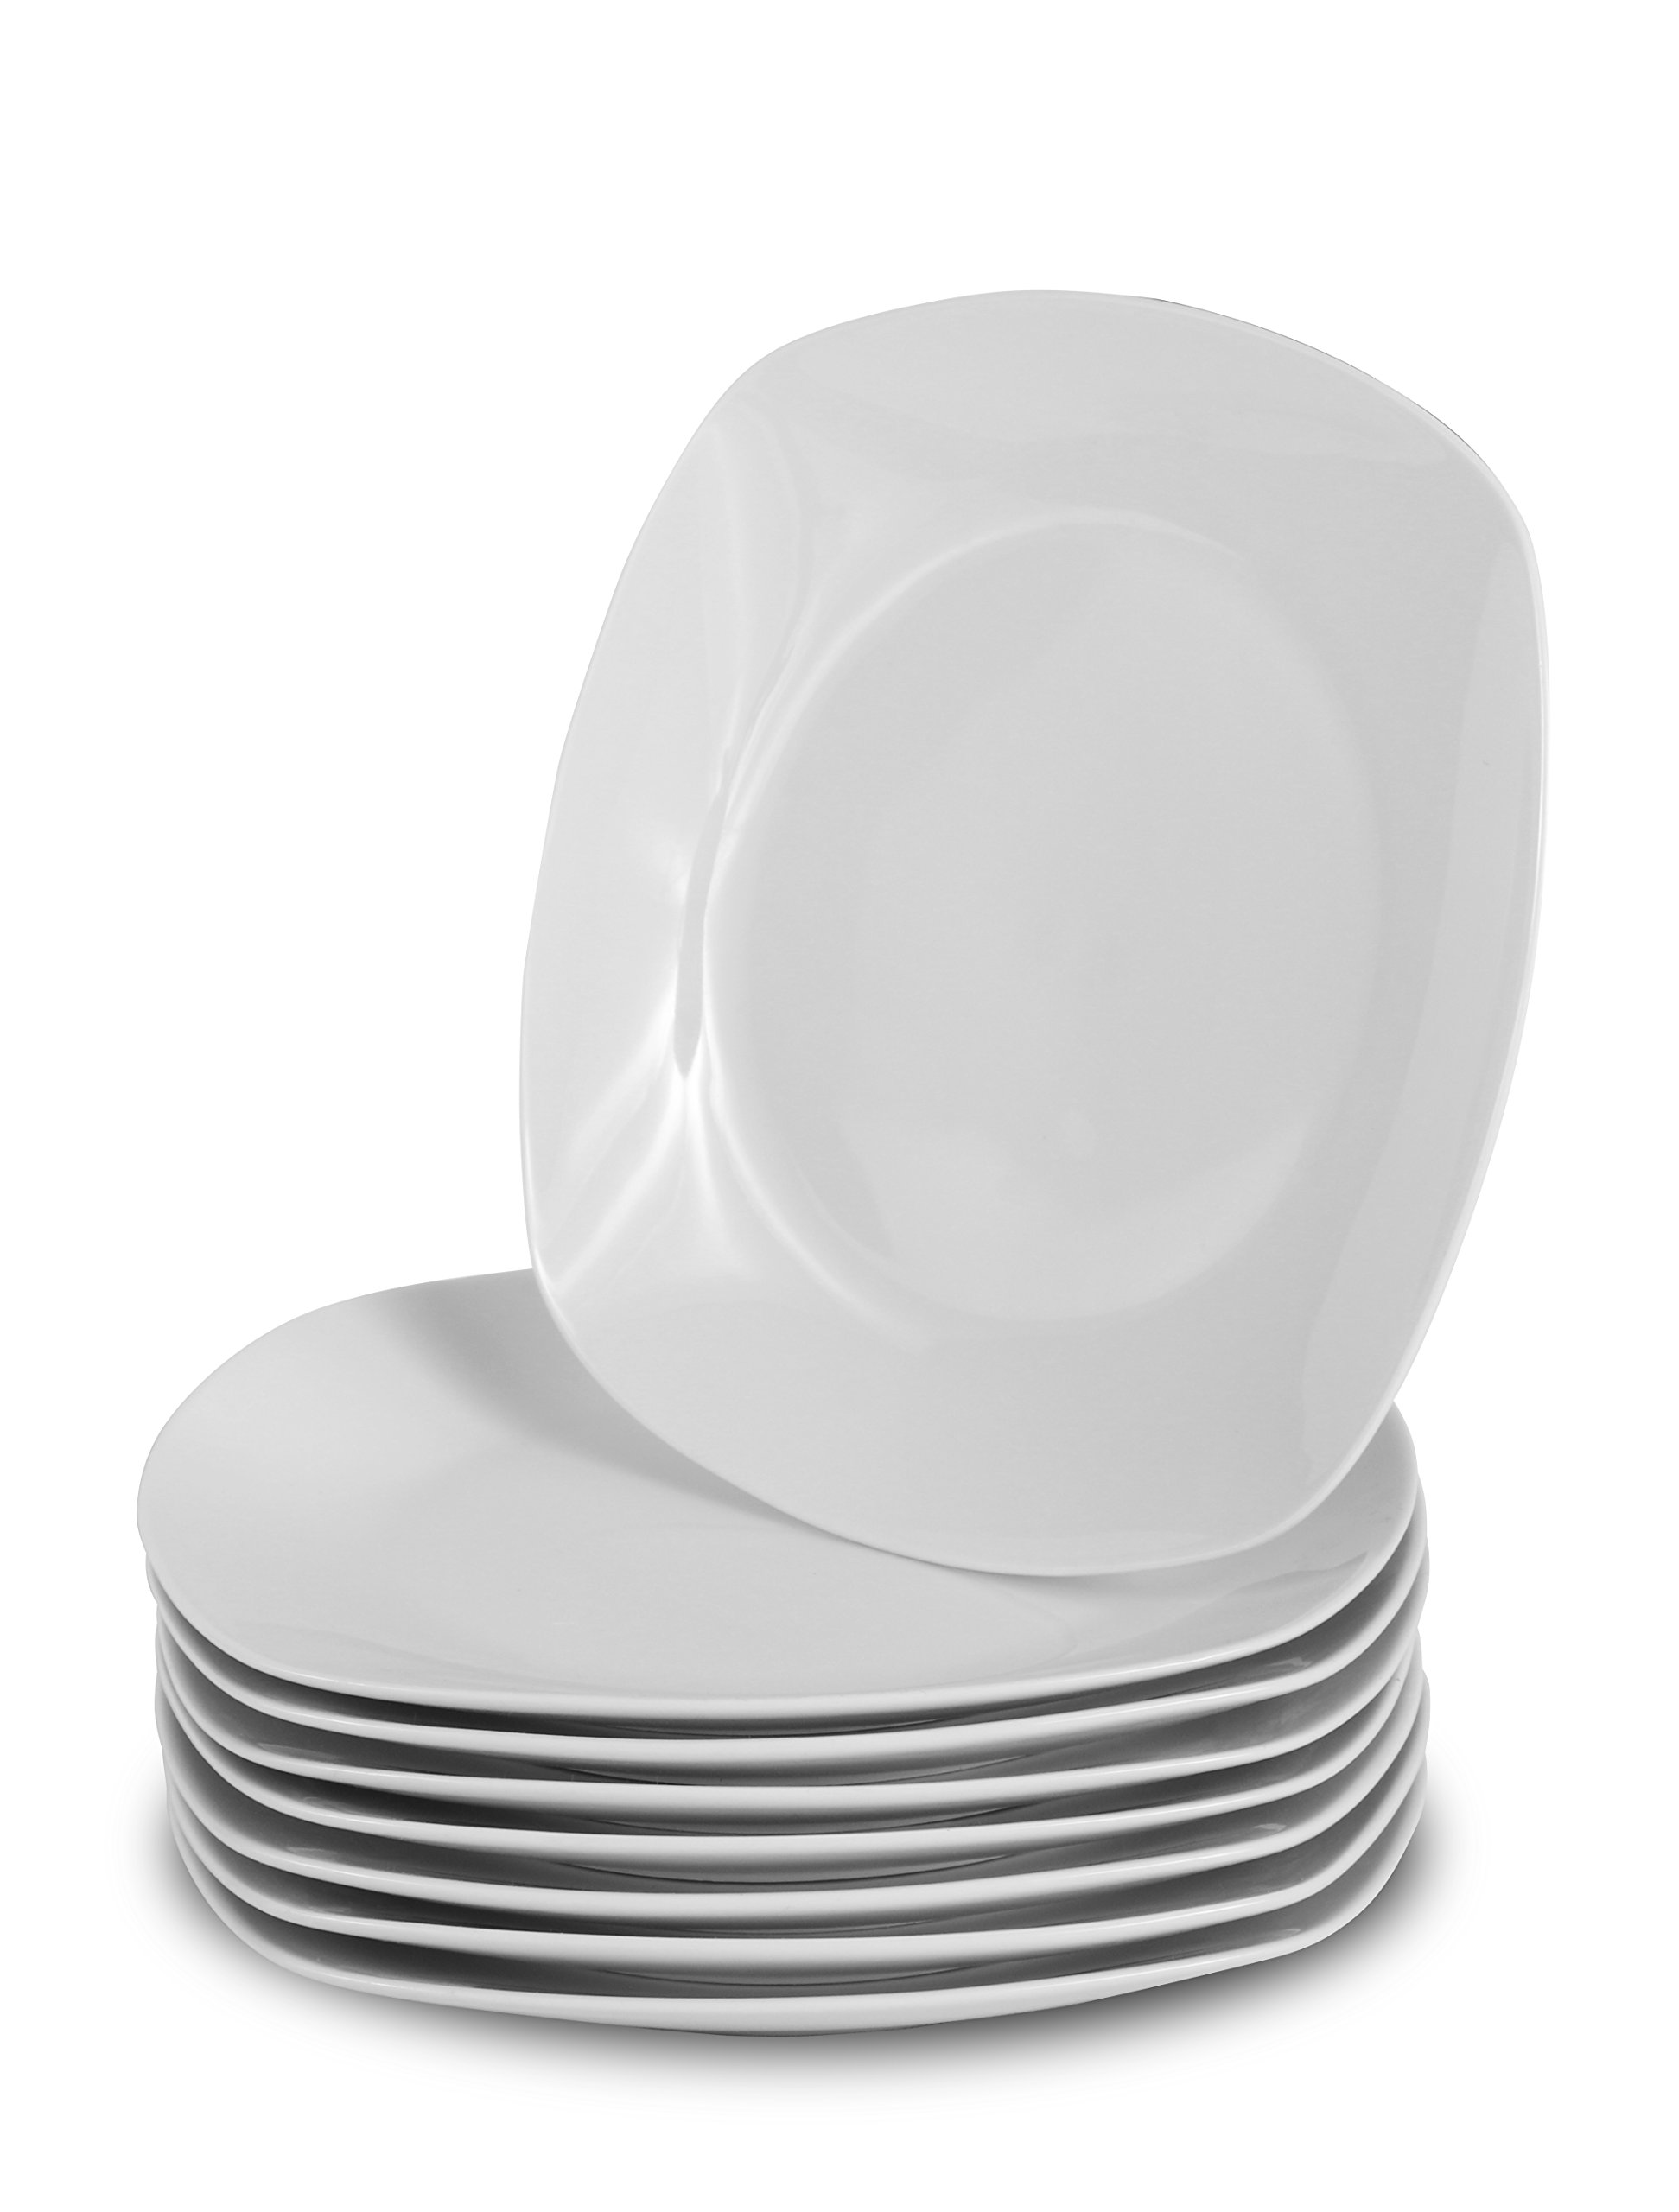 Klikel 8 White Salad Plates - Porcelain Square Dinnerware - 8.3 Inch Classic Solid Bread or Appetizer Coupe Style Plate Set